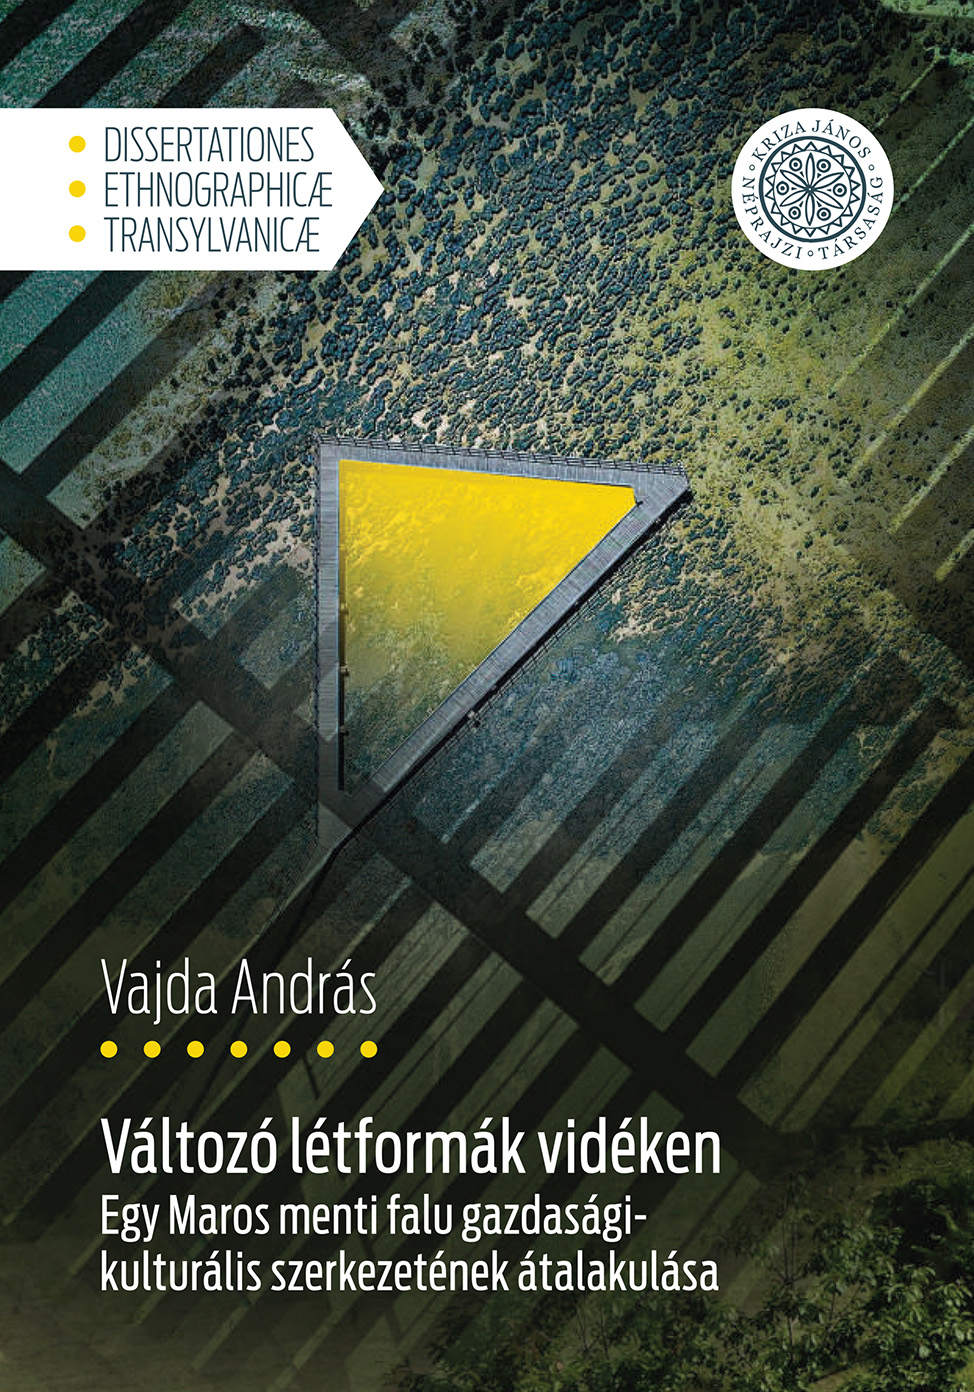 [Transformation of the Economic and Cultural Structure of a Village from Mureș Region] Változó létformák vidéken. Egy Maros menti falu gazdasági-kulturális szerkezetének átalakulása (Dissertationes Ethnographicæ Transylvanicæ)